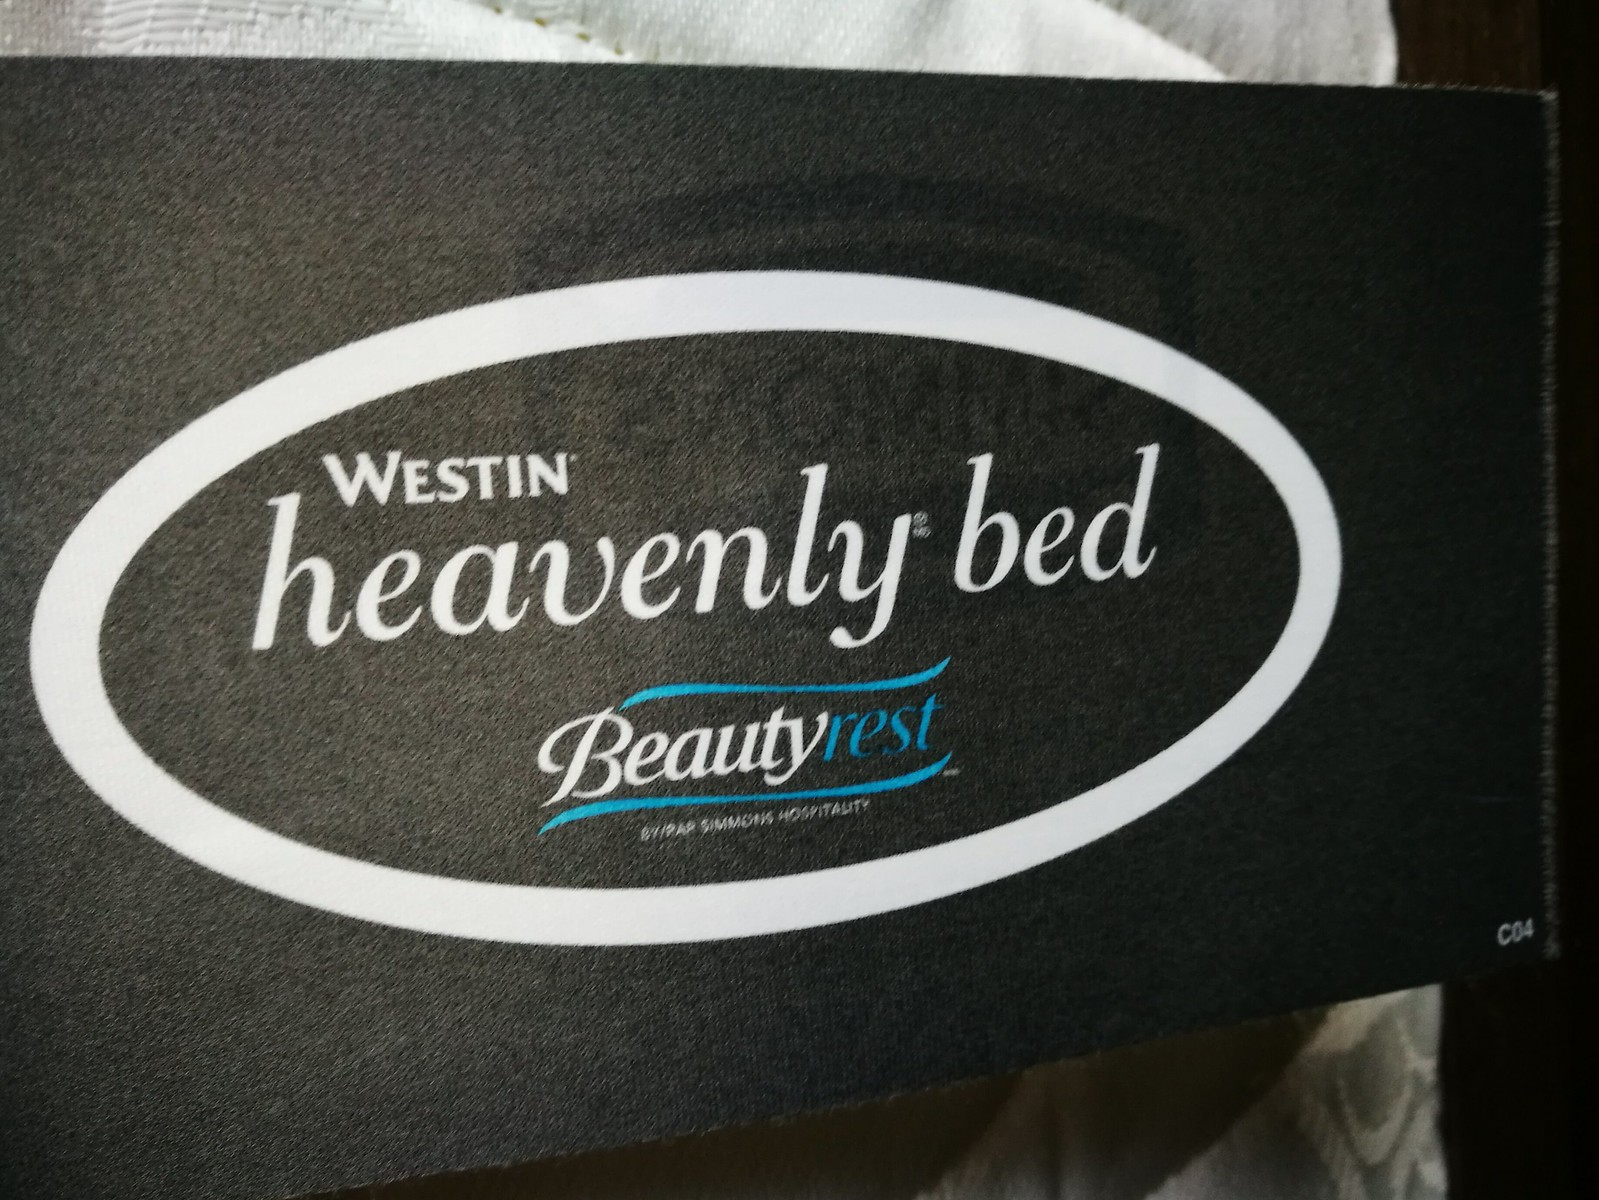 Heavenly bed mattress